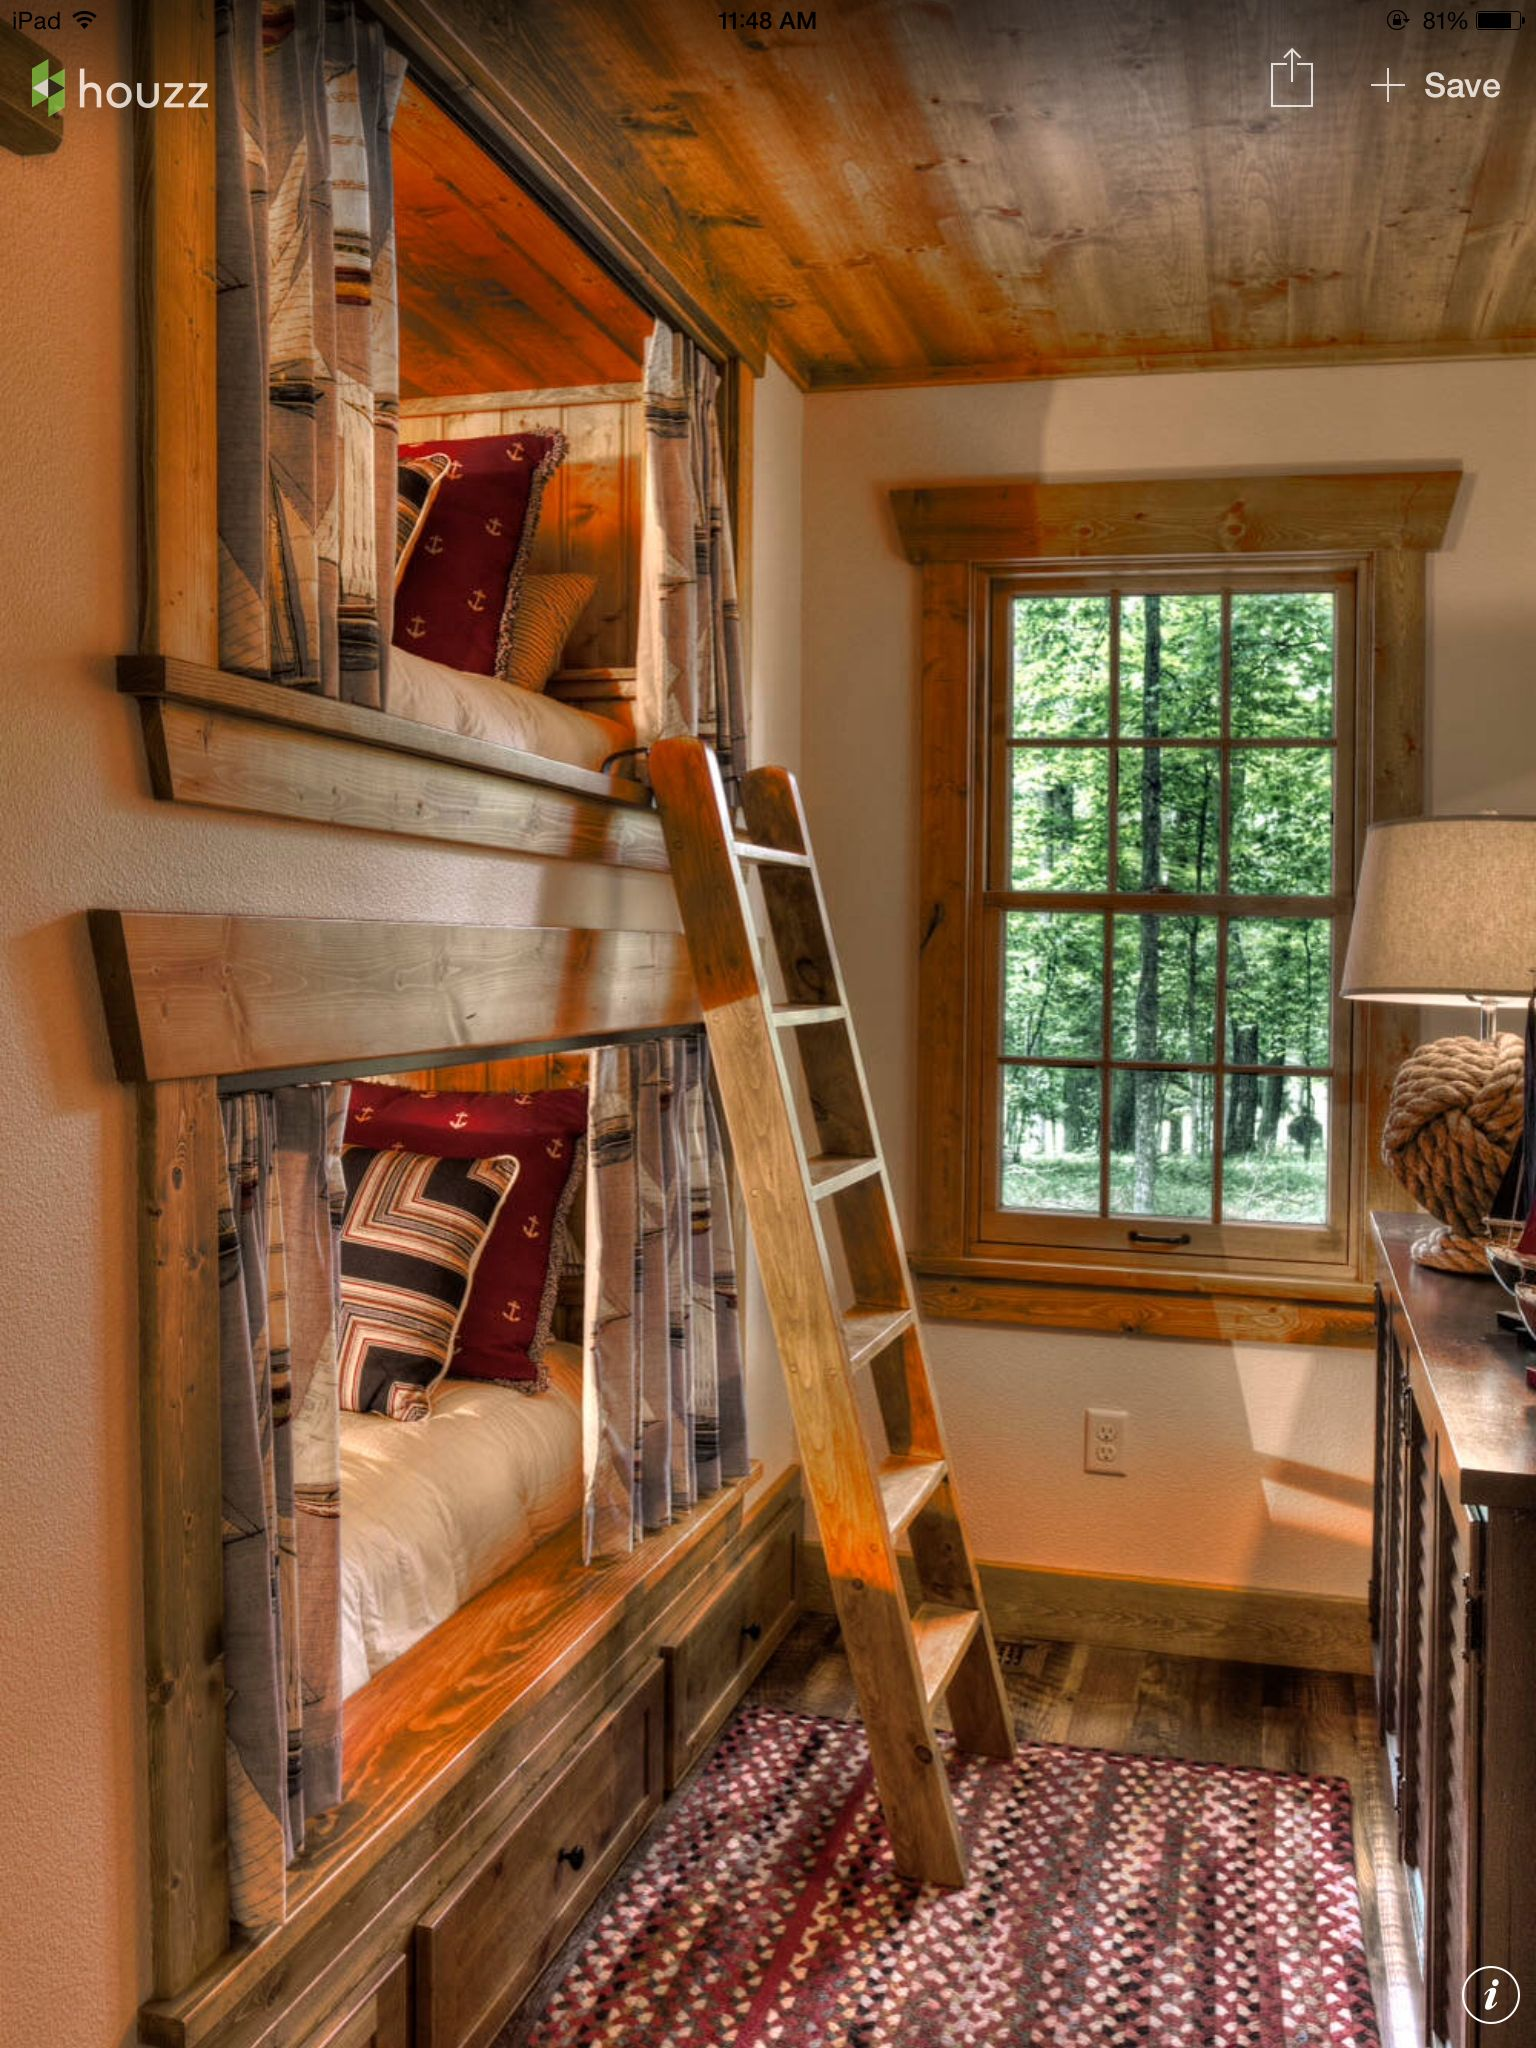 Pin by Lena Willis on cabin ideas Rustic bedroom design